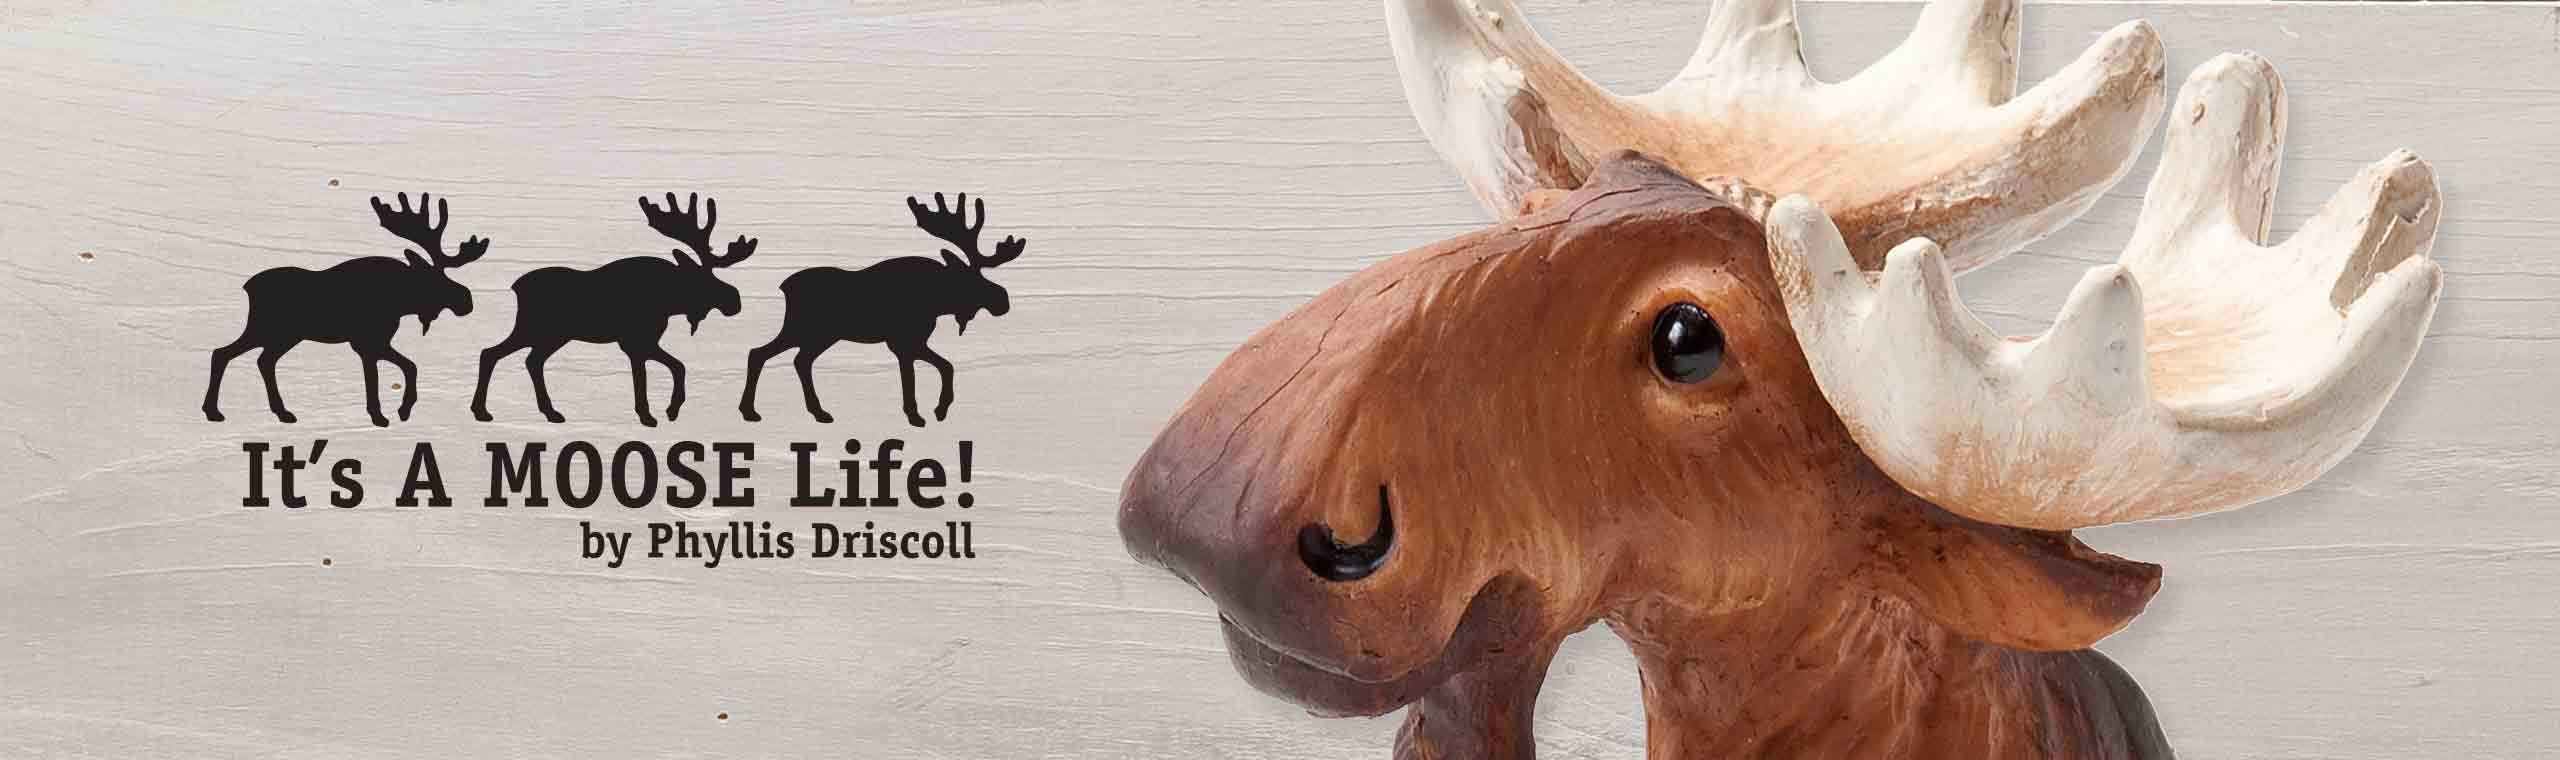 Its a moose life banner by Phyllis Driscoll and a zoomed up picture of a moose